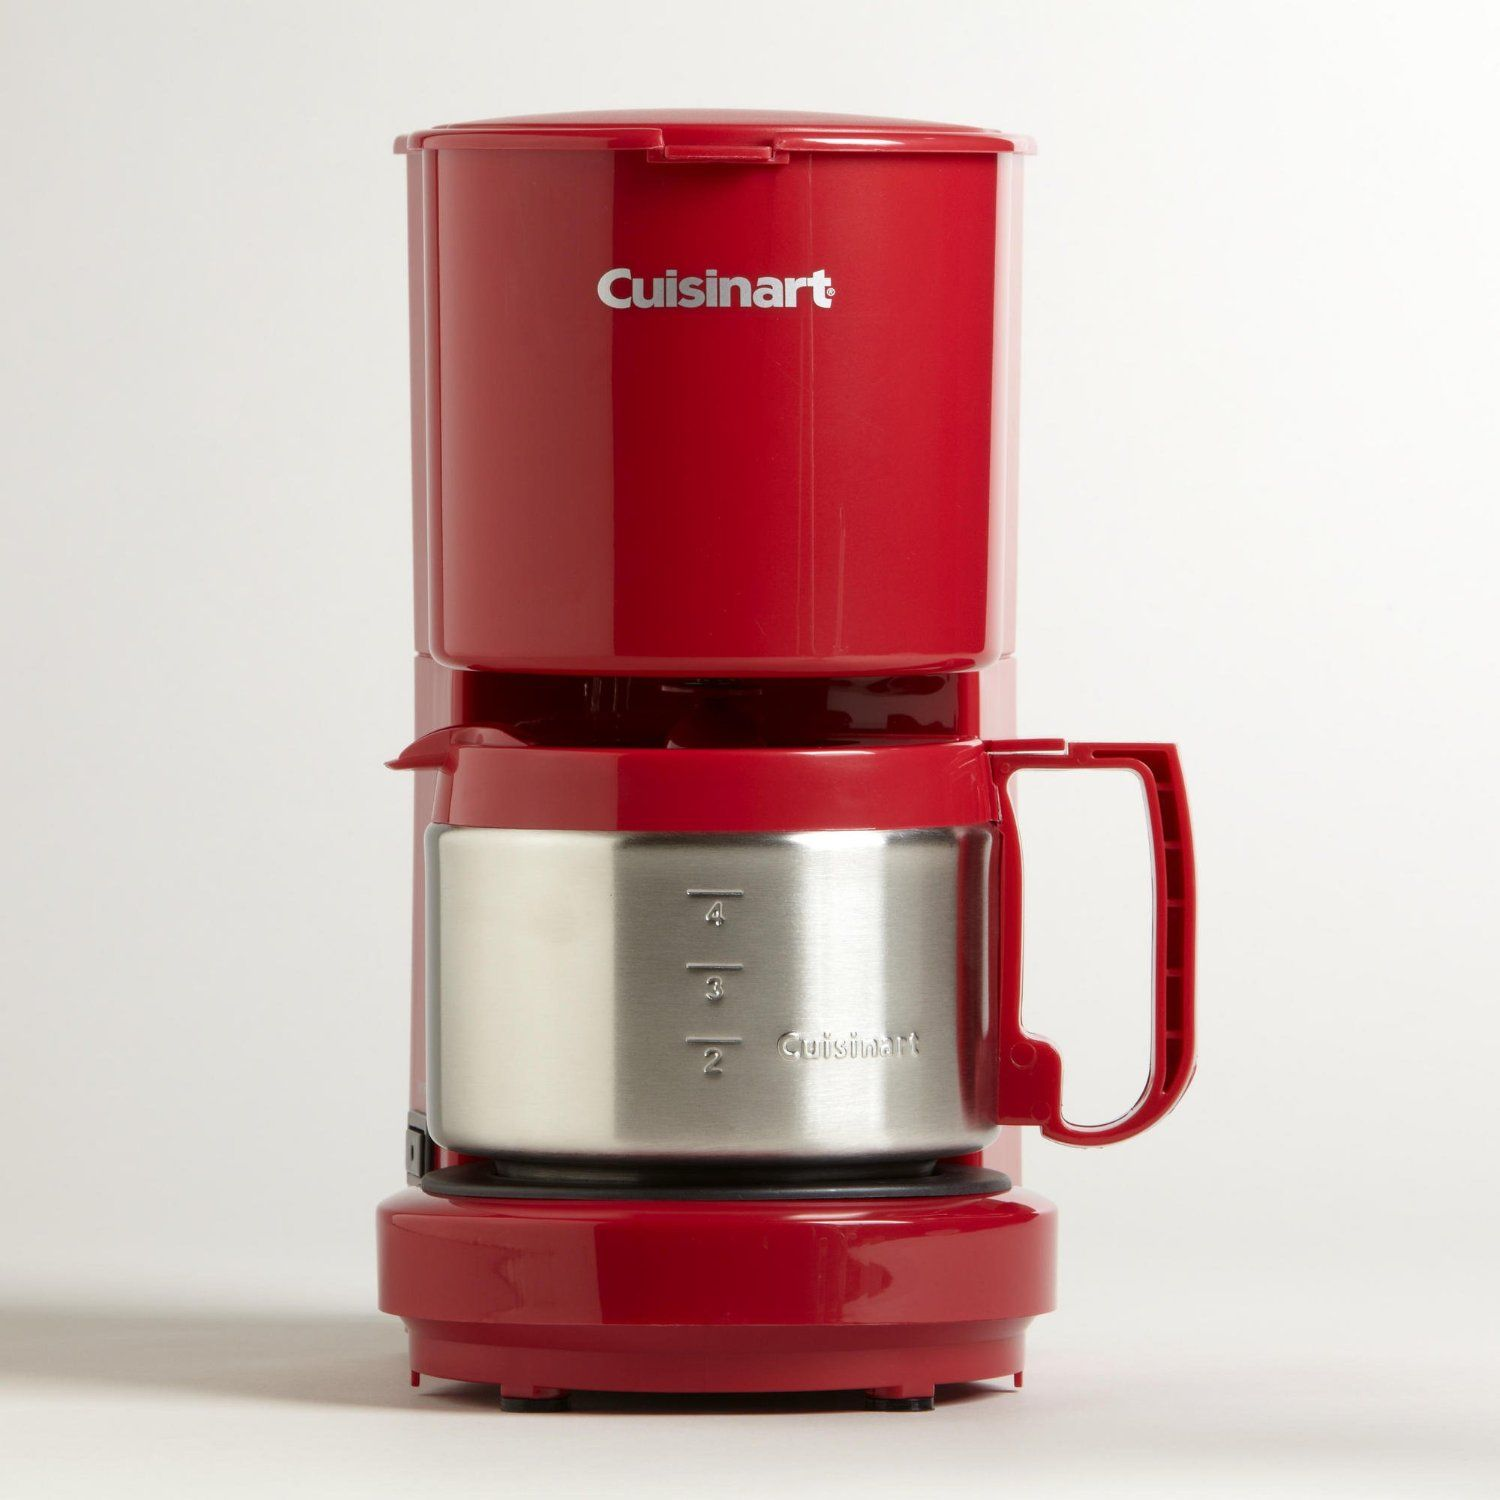 Amazon Com Red Cuisinart 4 Cup Coffeemaker World Market Home Kitchen My New Coffee Maker 4 Cup Coffee Maker Coffee Maker Cuisinart Coffee Maker